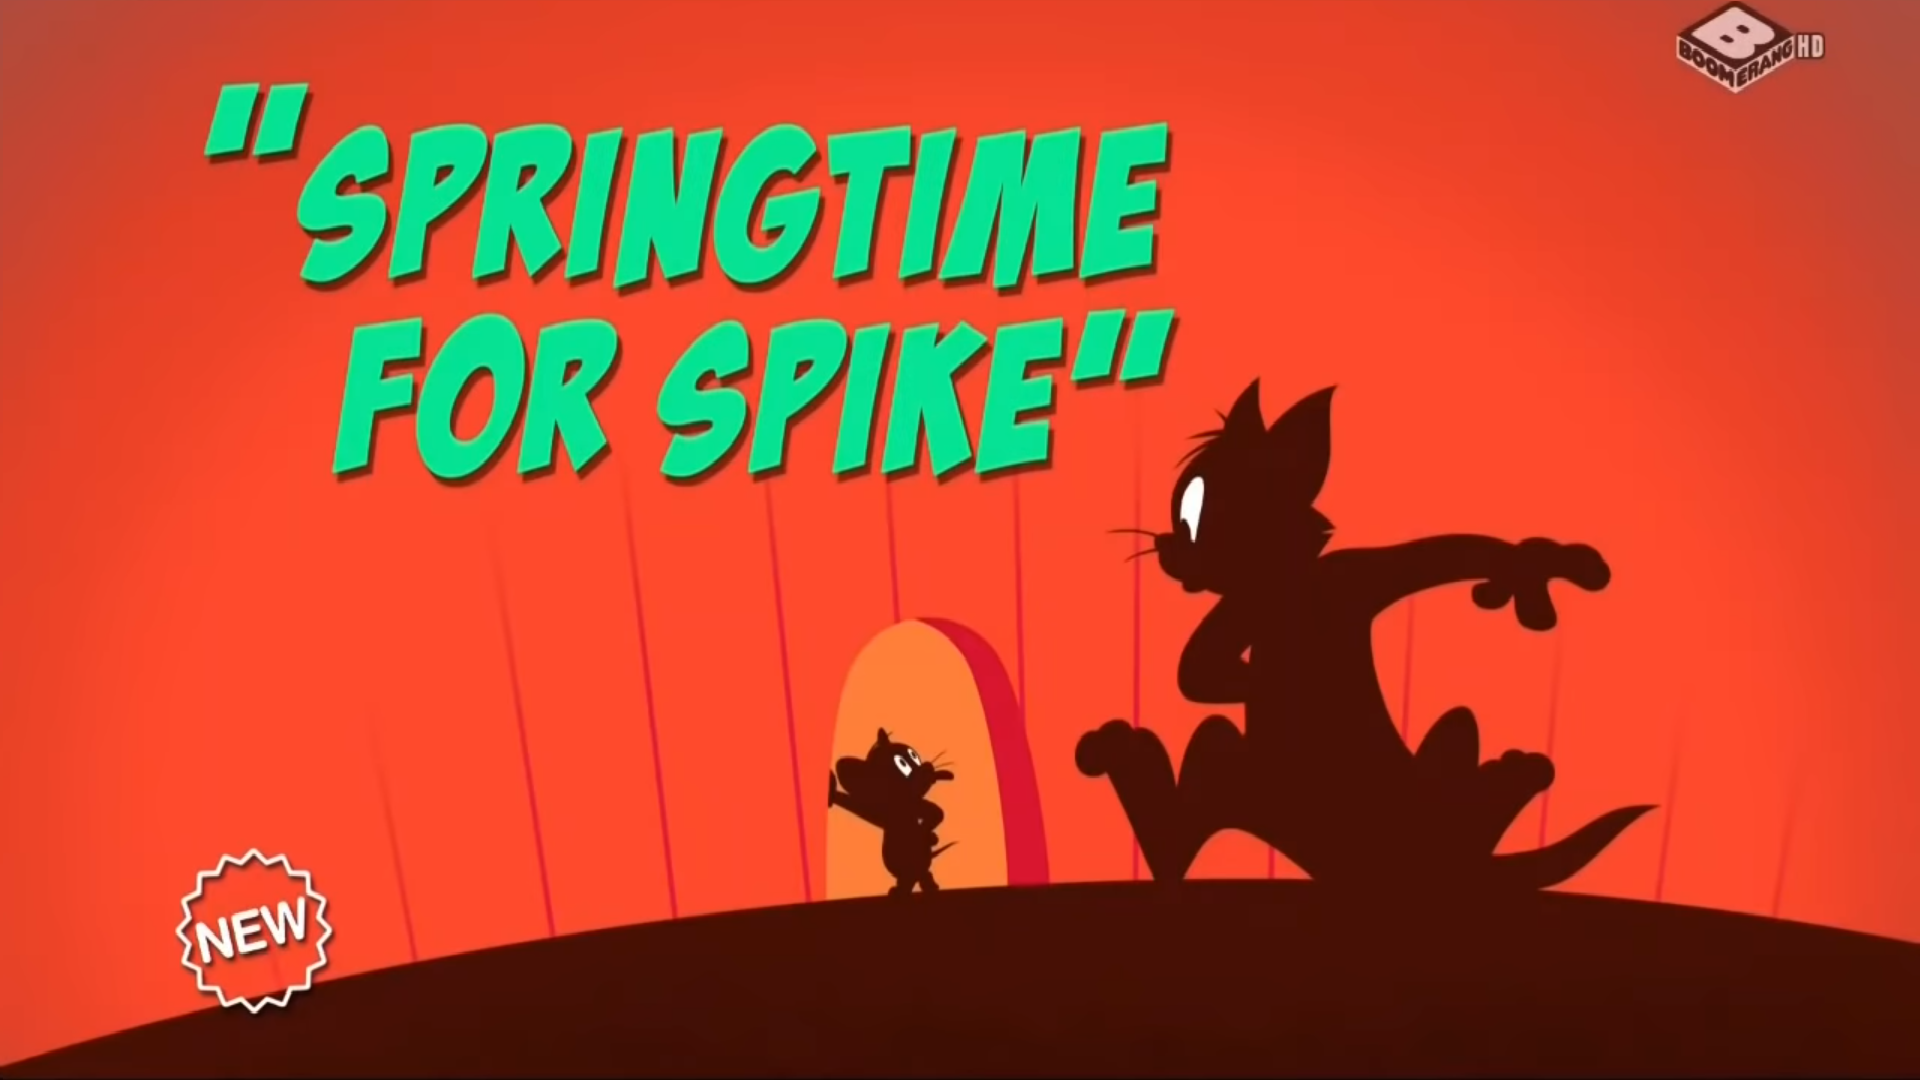 Springtime For Spike